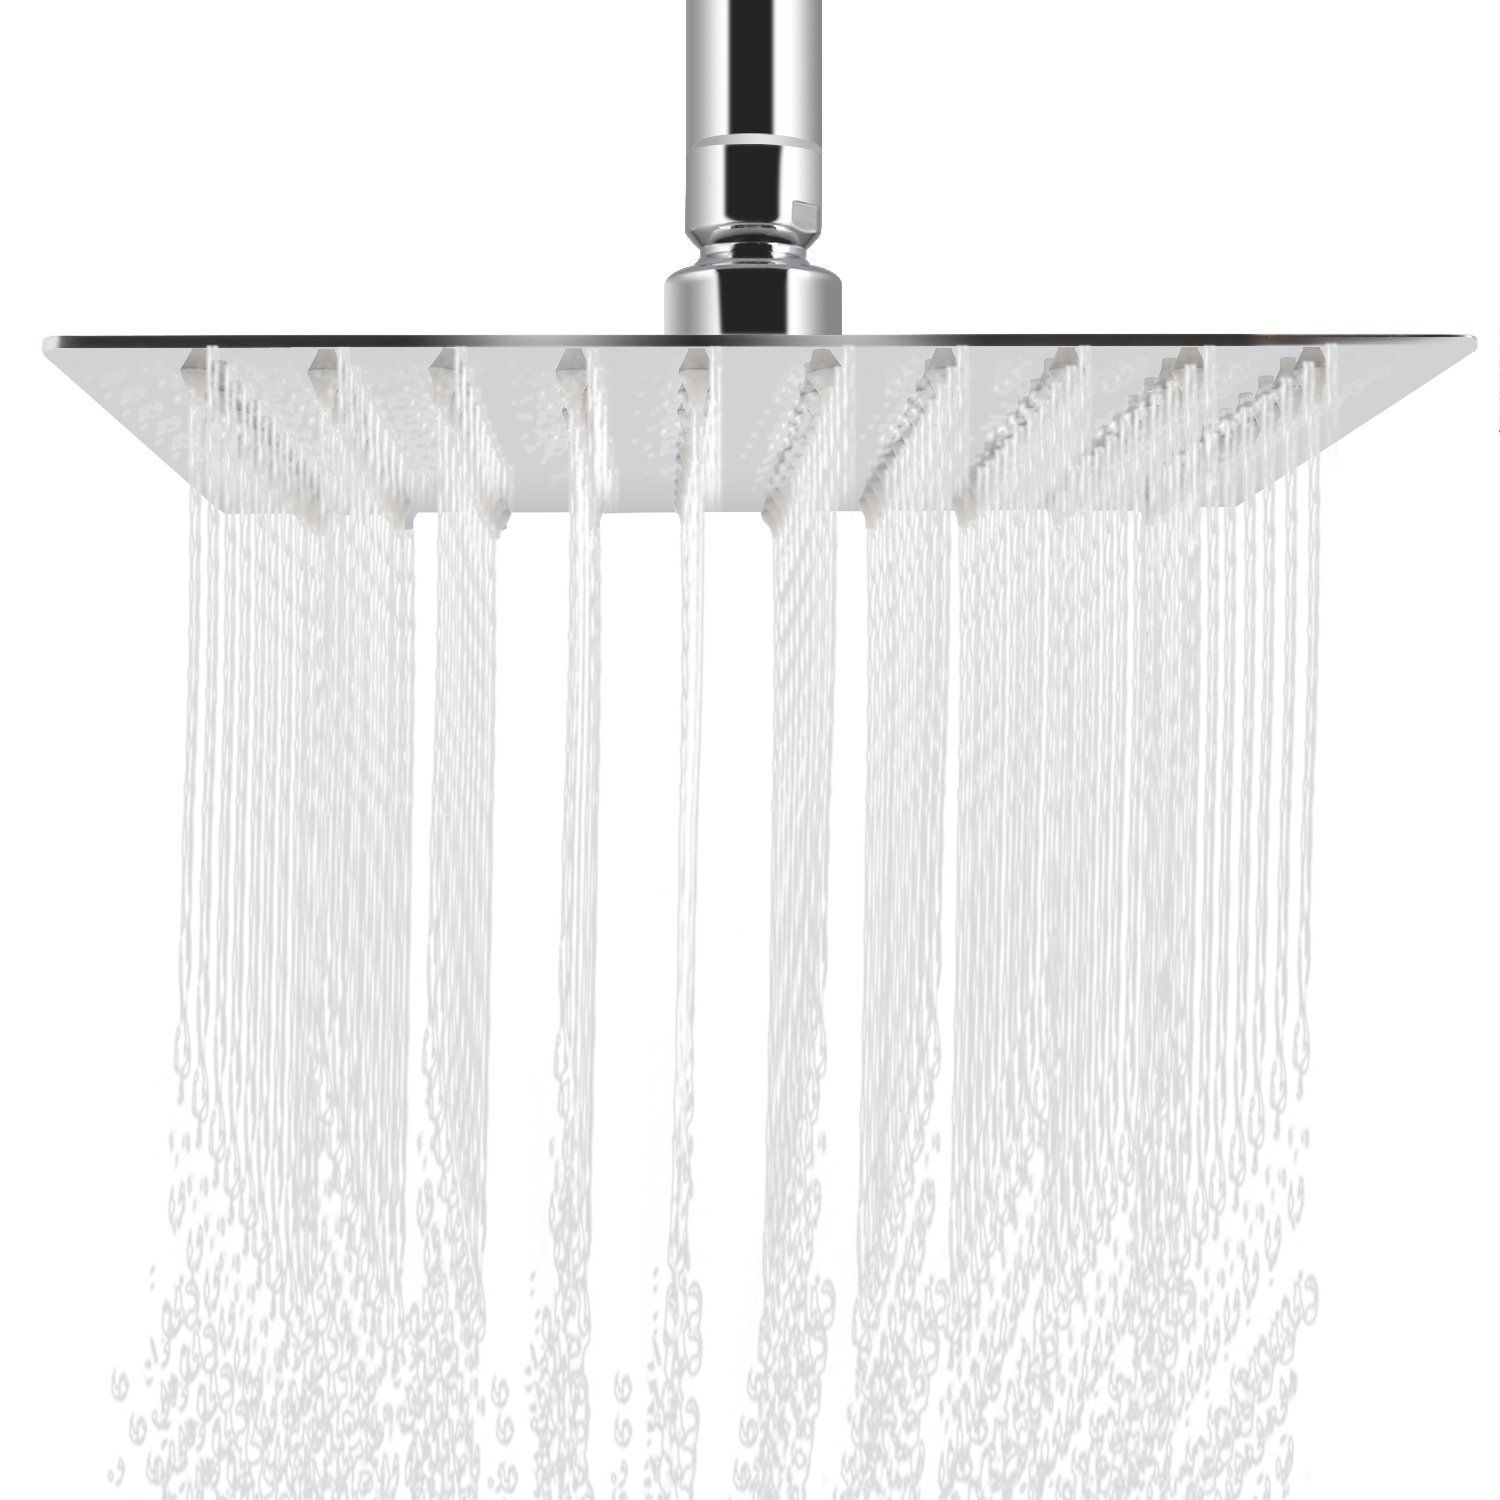 Rainfall Shower head, ieGeek Universal Luxury Large Bath Shower 304 Stainless Steel High Pressure Shower Head with Full Polish Chrome Finish and Anti-lime Nozzles Easy to Install Square - 12 Inch